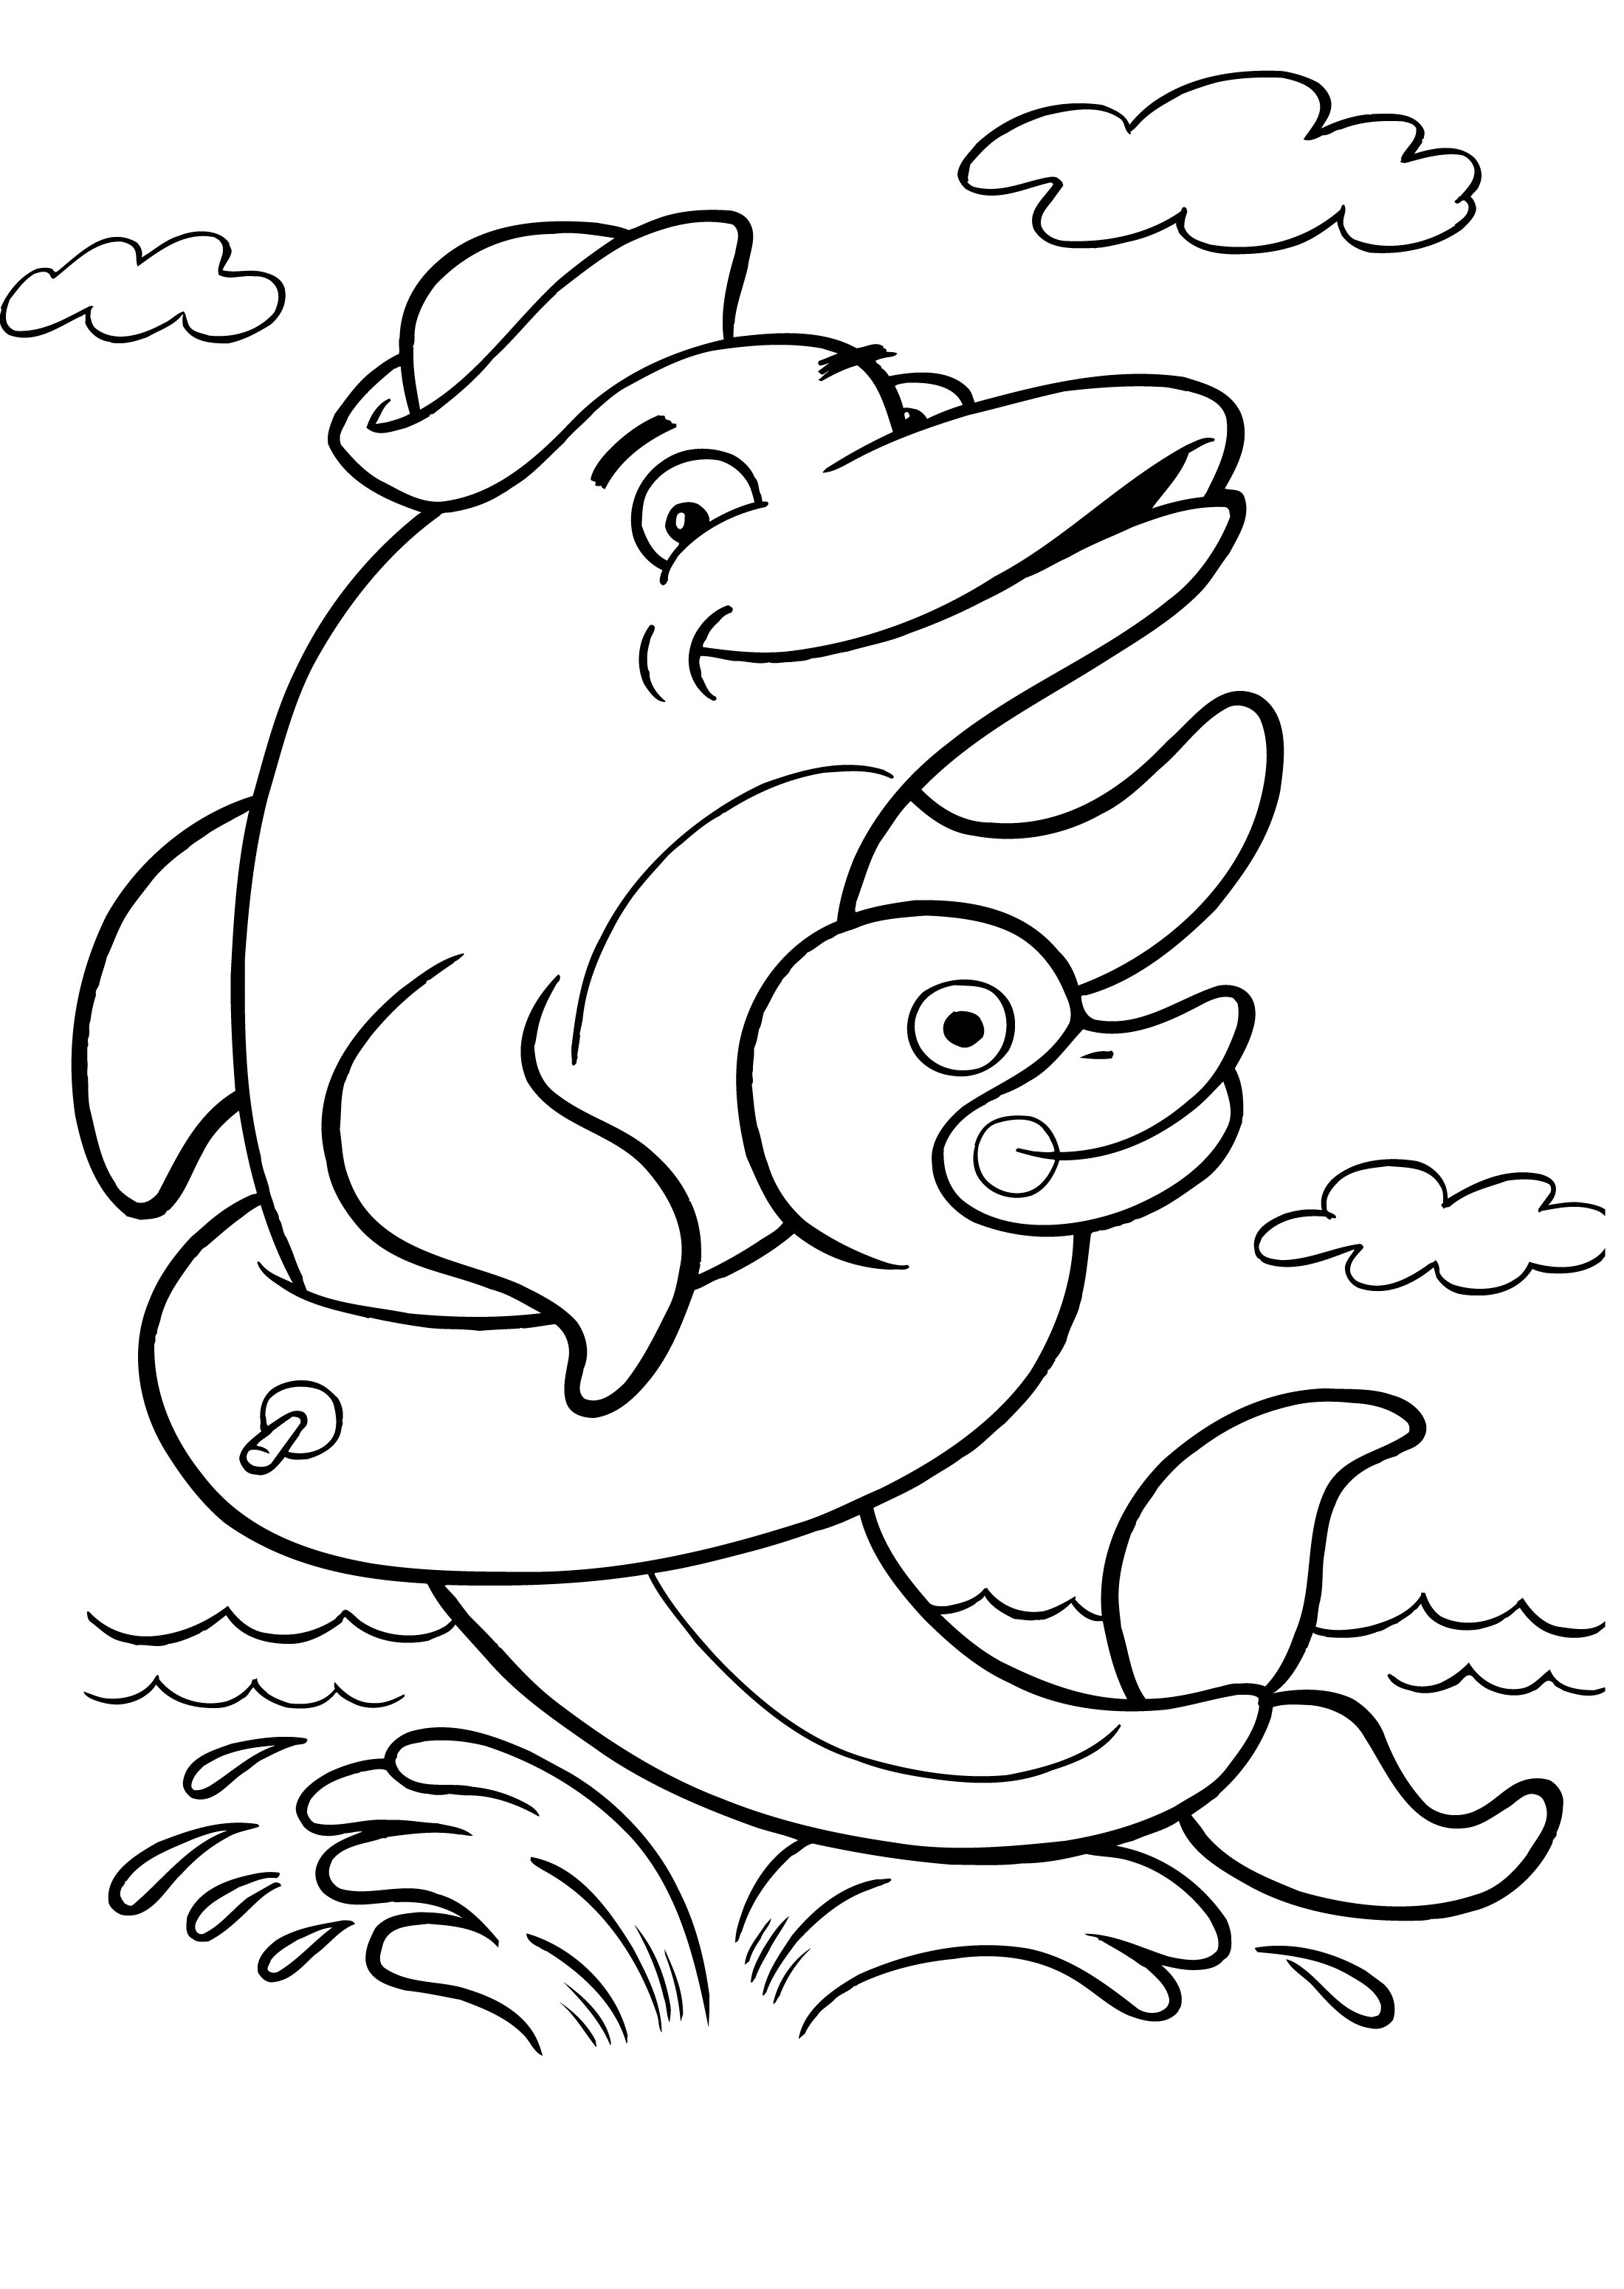 printable dolphin coloring pages printable dolphins animal coloring pages kentscraft pages coloring dolphin printable